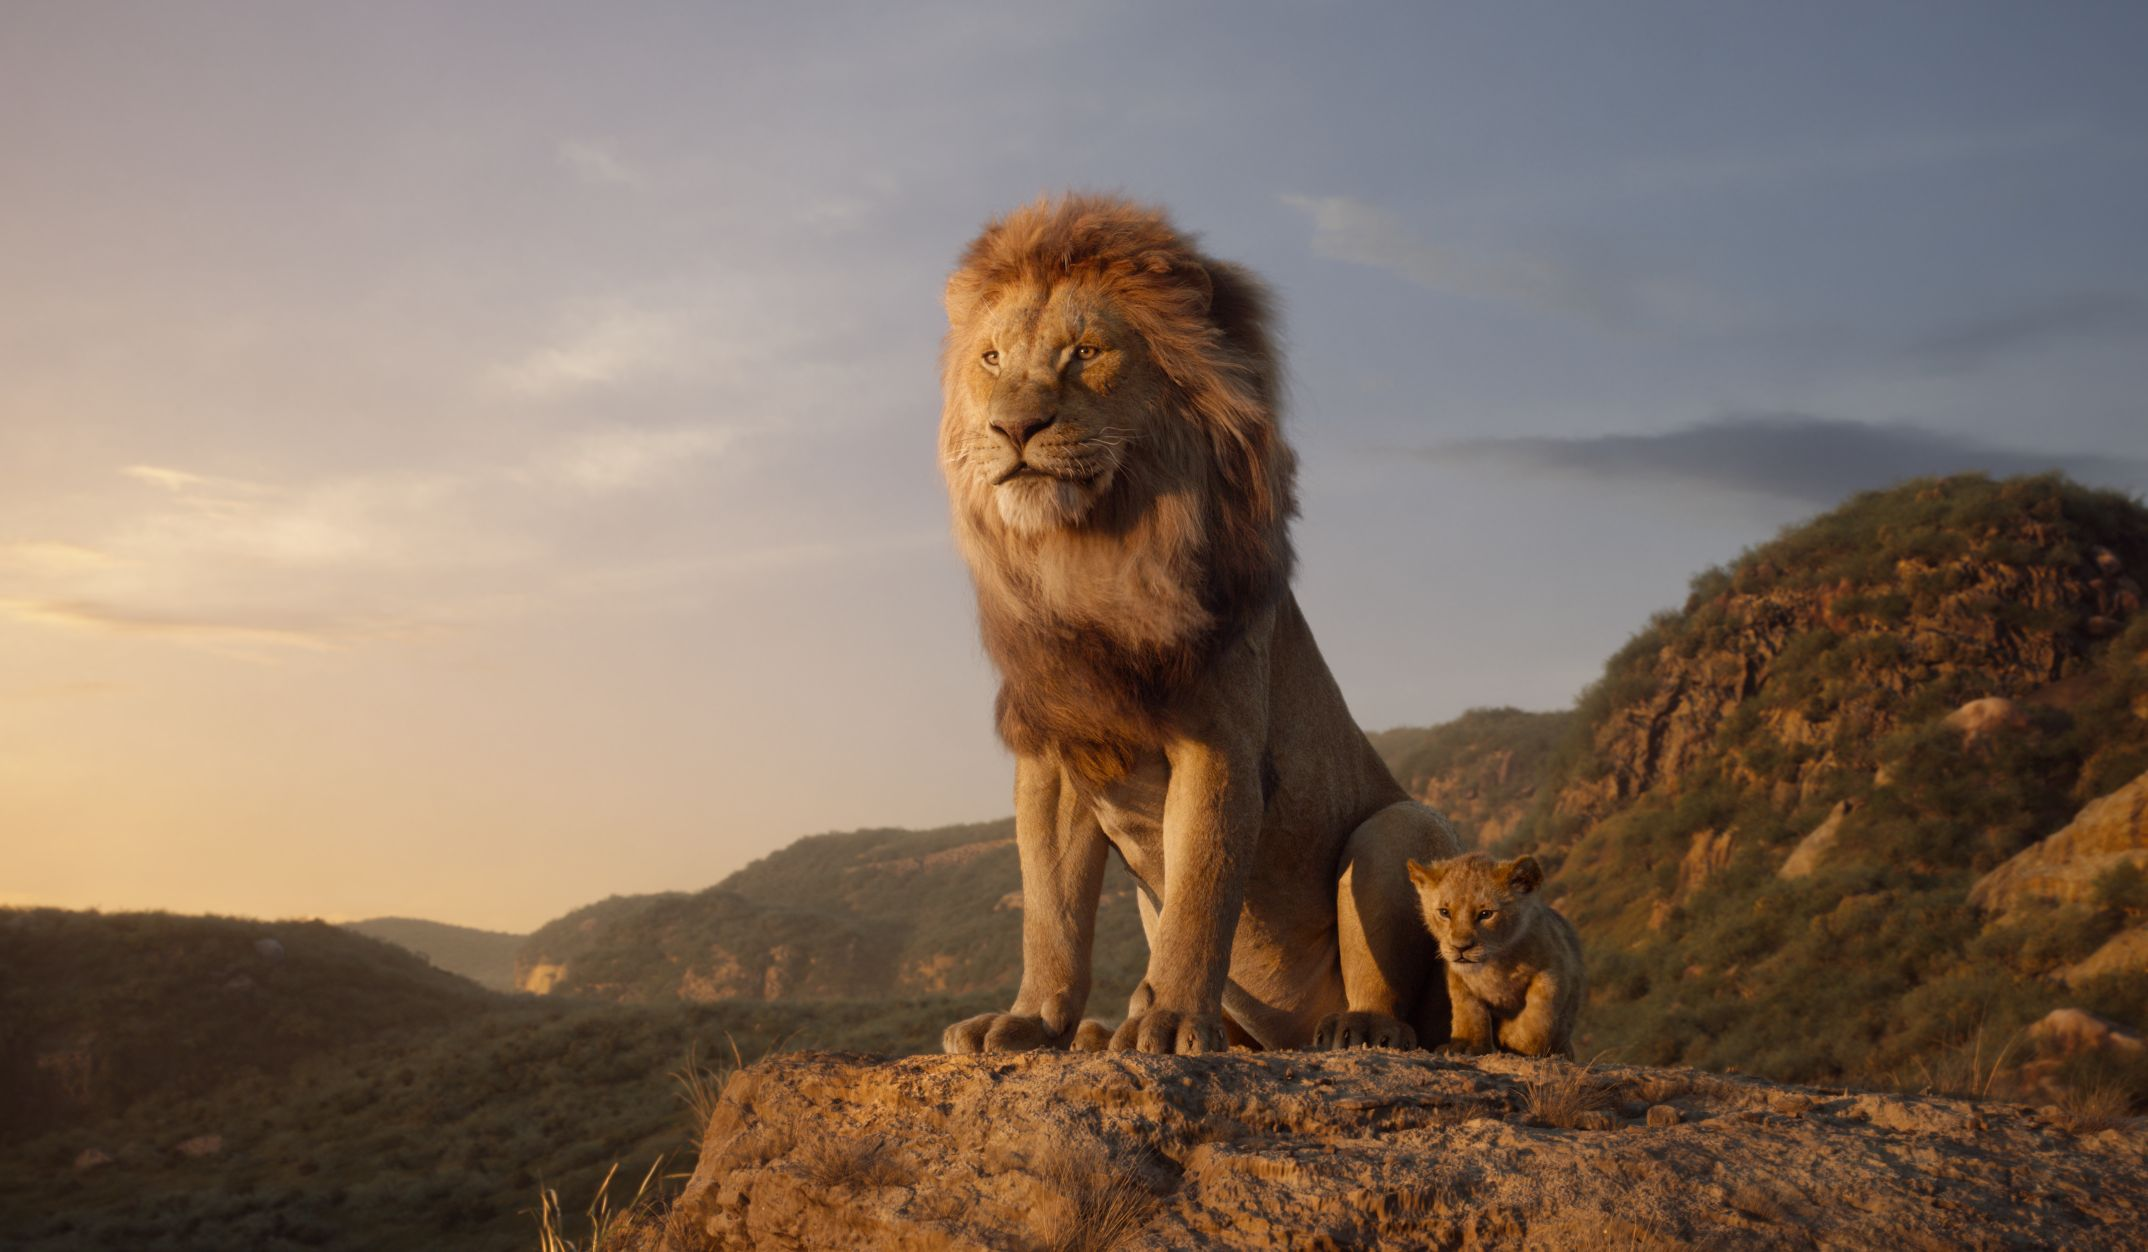 Jon Favreau Releases New Promo Images for The Lion King